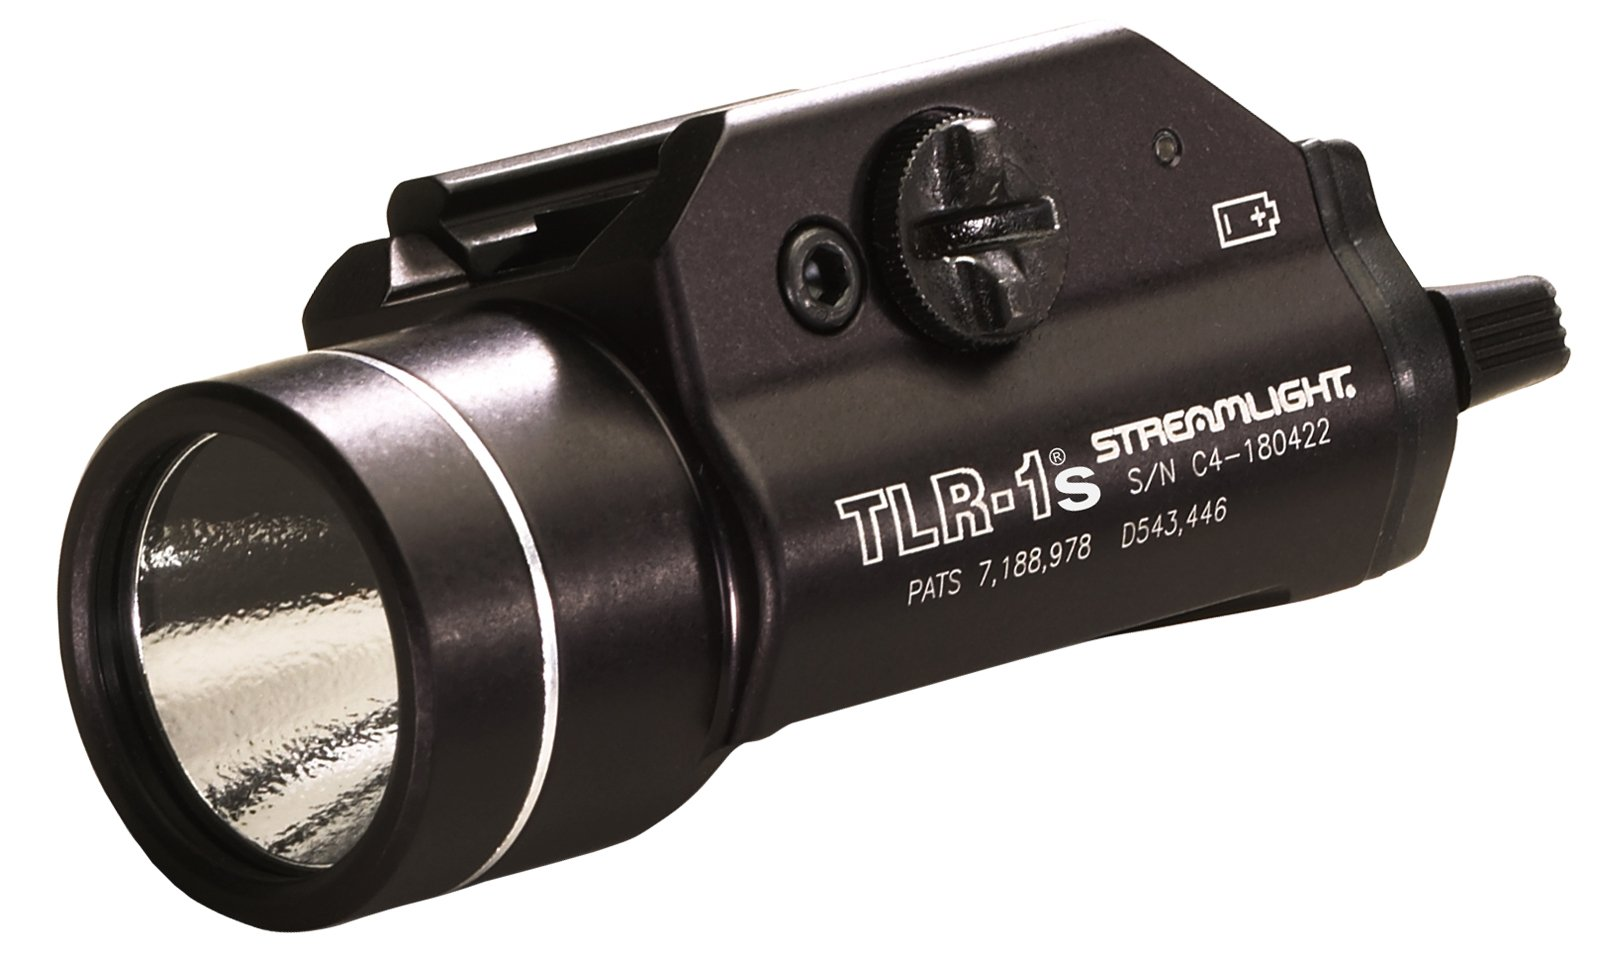 Streamlight 69210 TLR-1s LED Rail Mounted Flashlight with Strobe Function and Rail Locating Keys by Streamlight